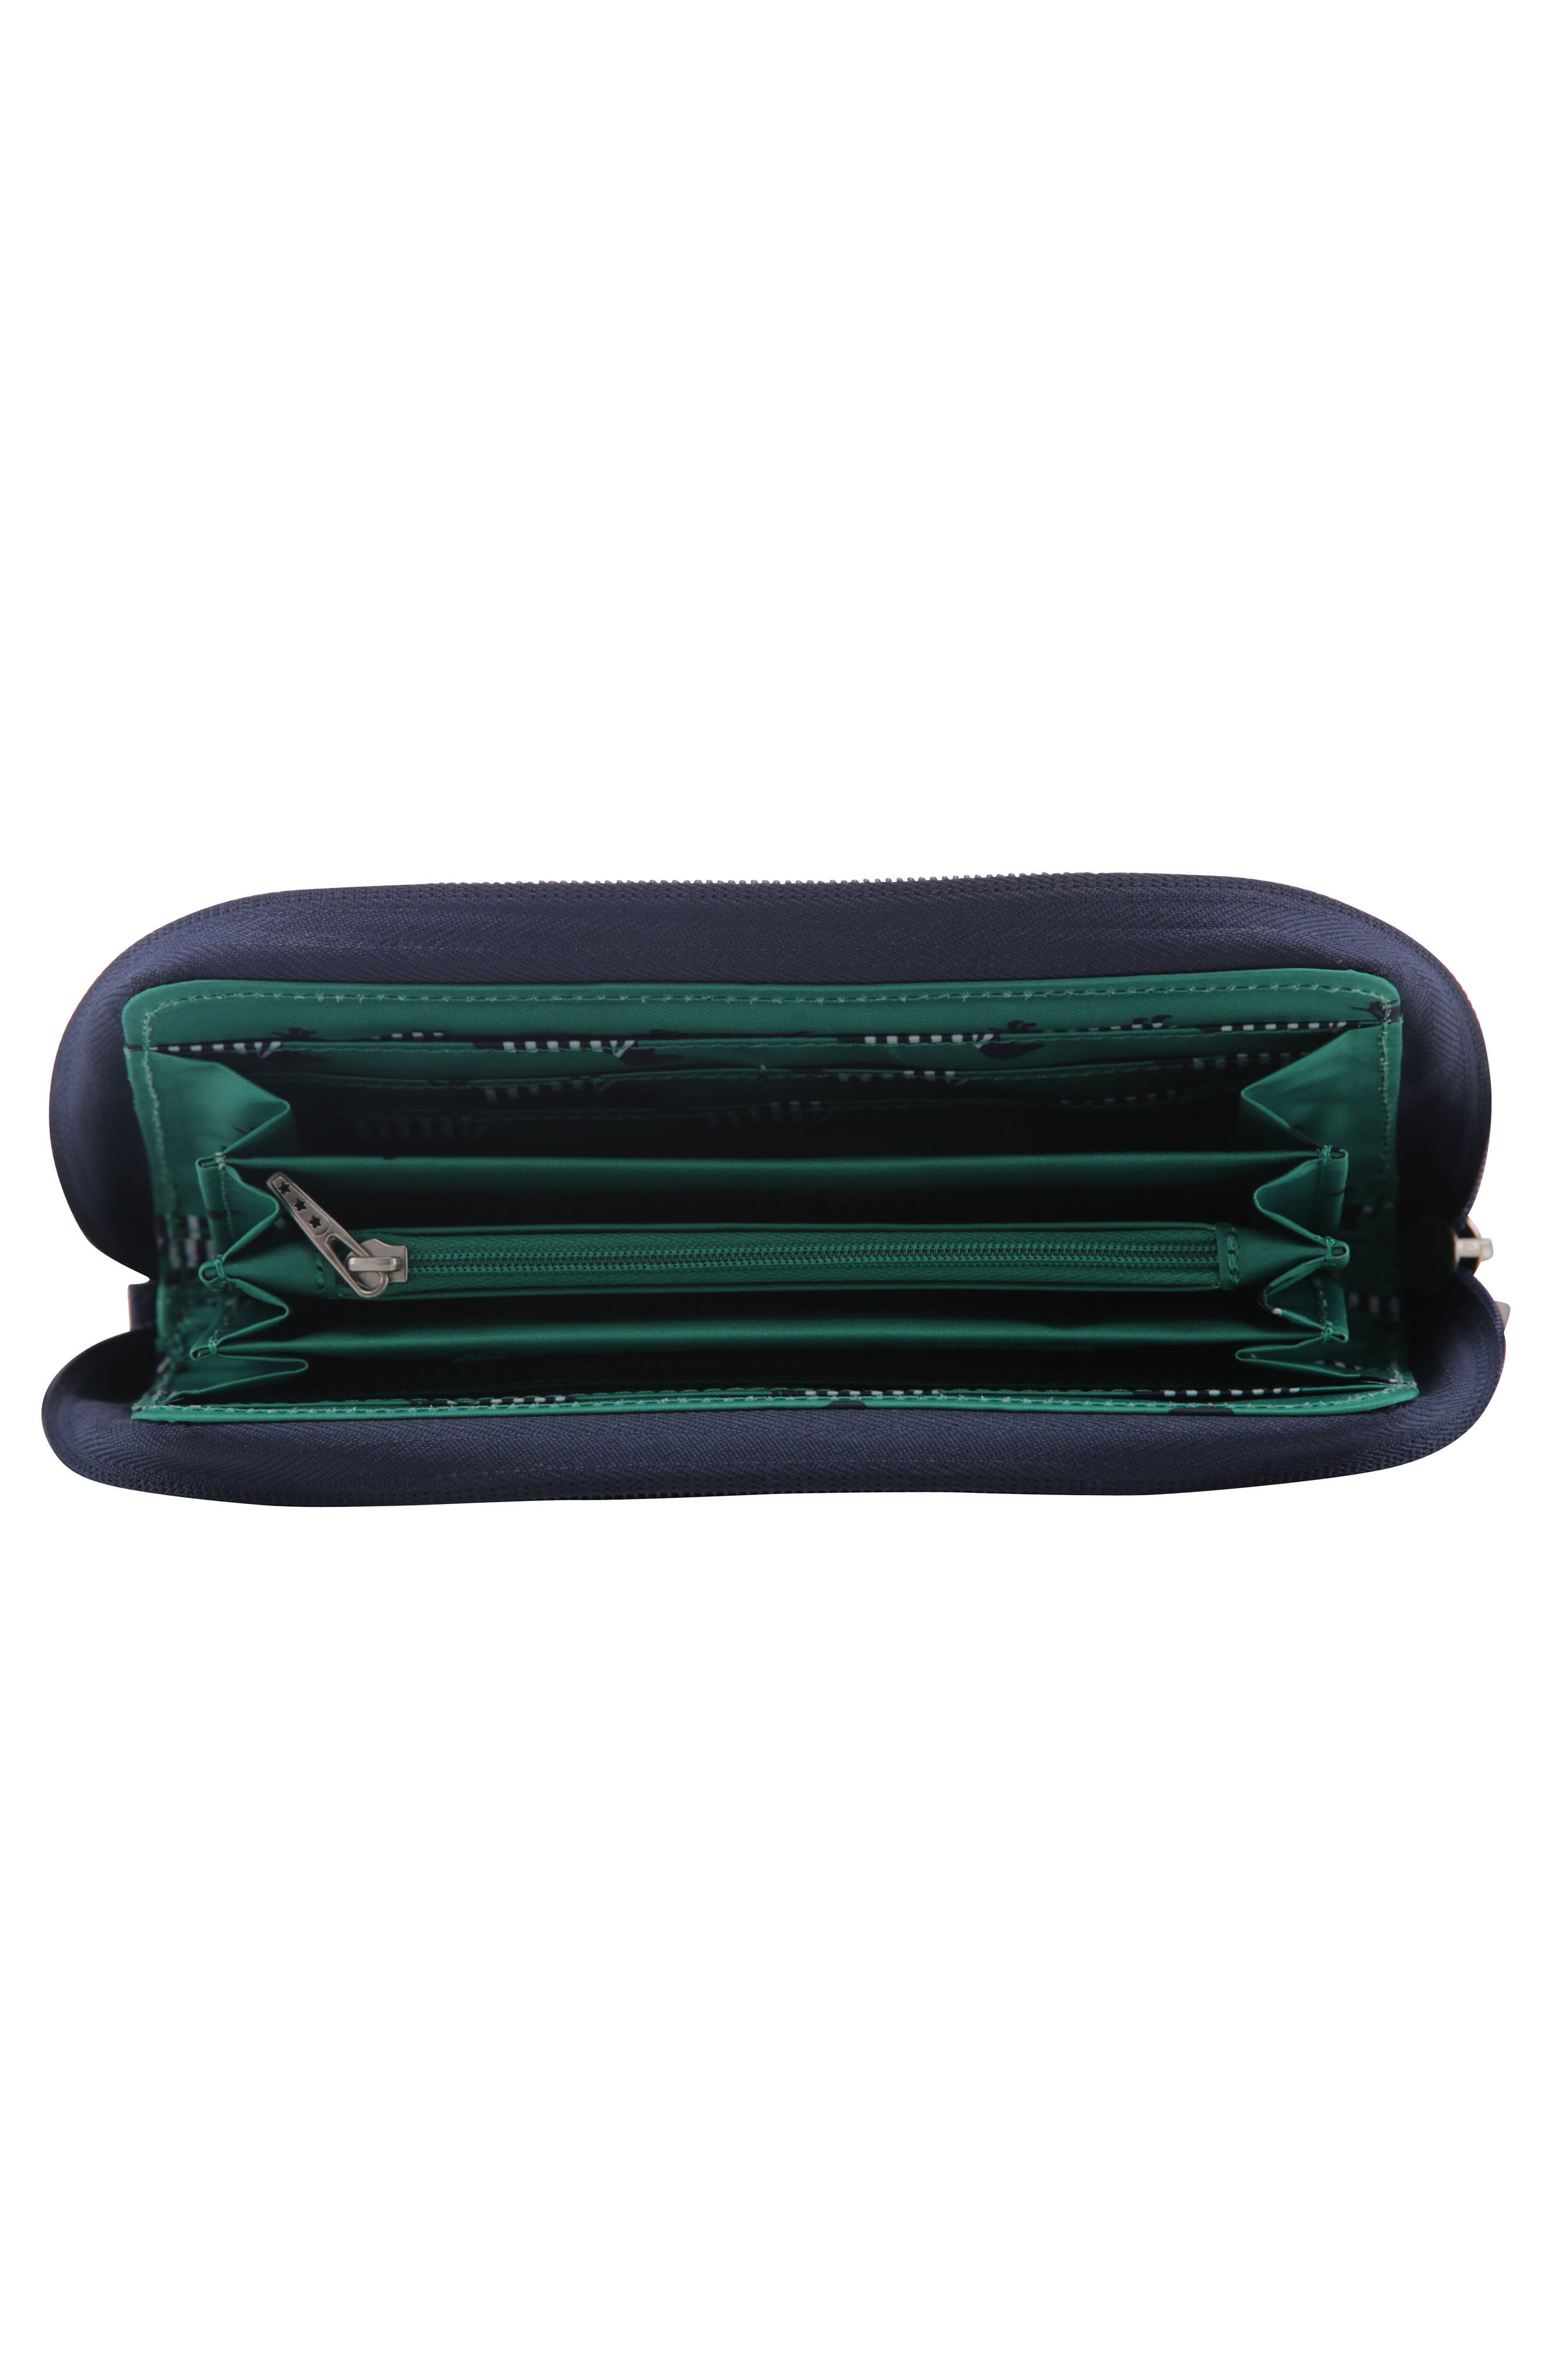 Be Spendy - Coastal Collection Clutch Wallet,                             Alternate thumbnail 2, color,                             PROVIDENCE